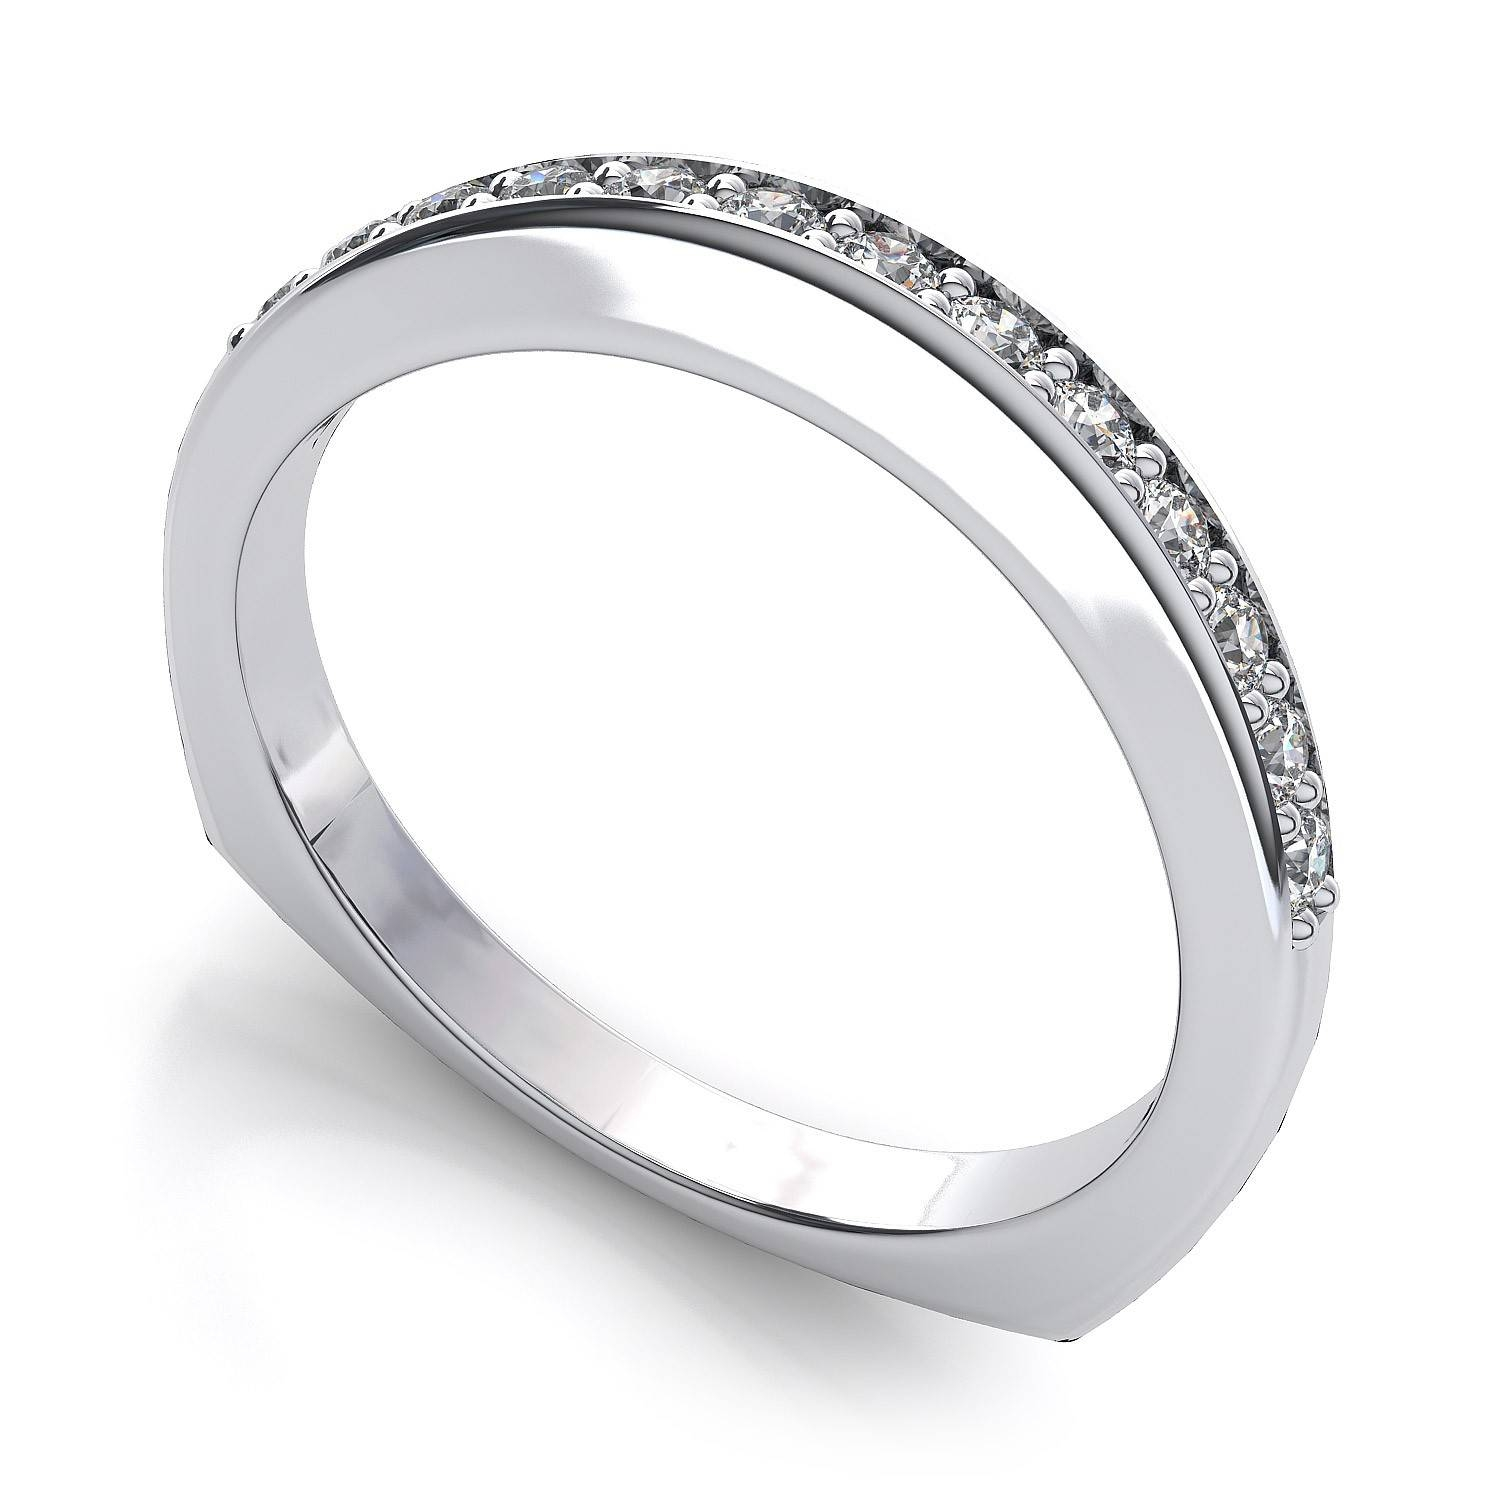 Wedding Rings : Micro Pave Wedding Band Platinum Micro Pave With Regard To Newest Pave Setting Wedding Bands (View 13 of 15)